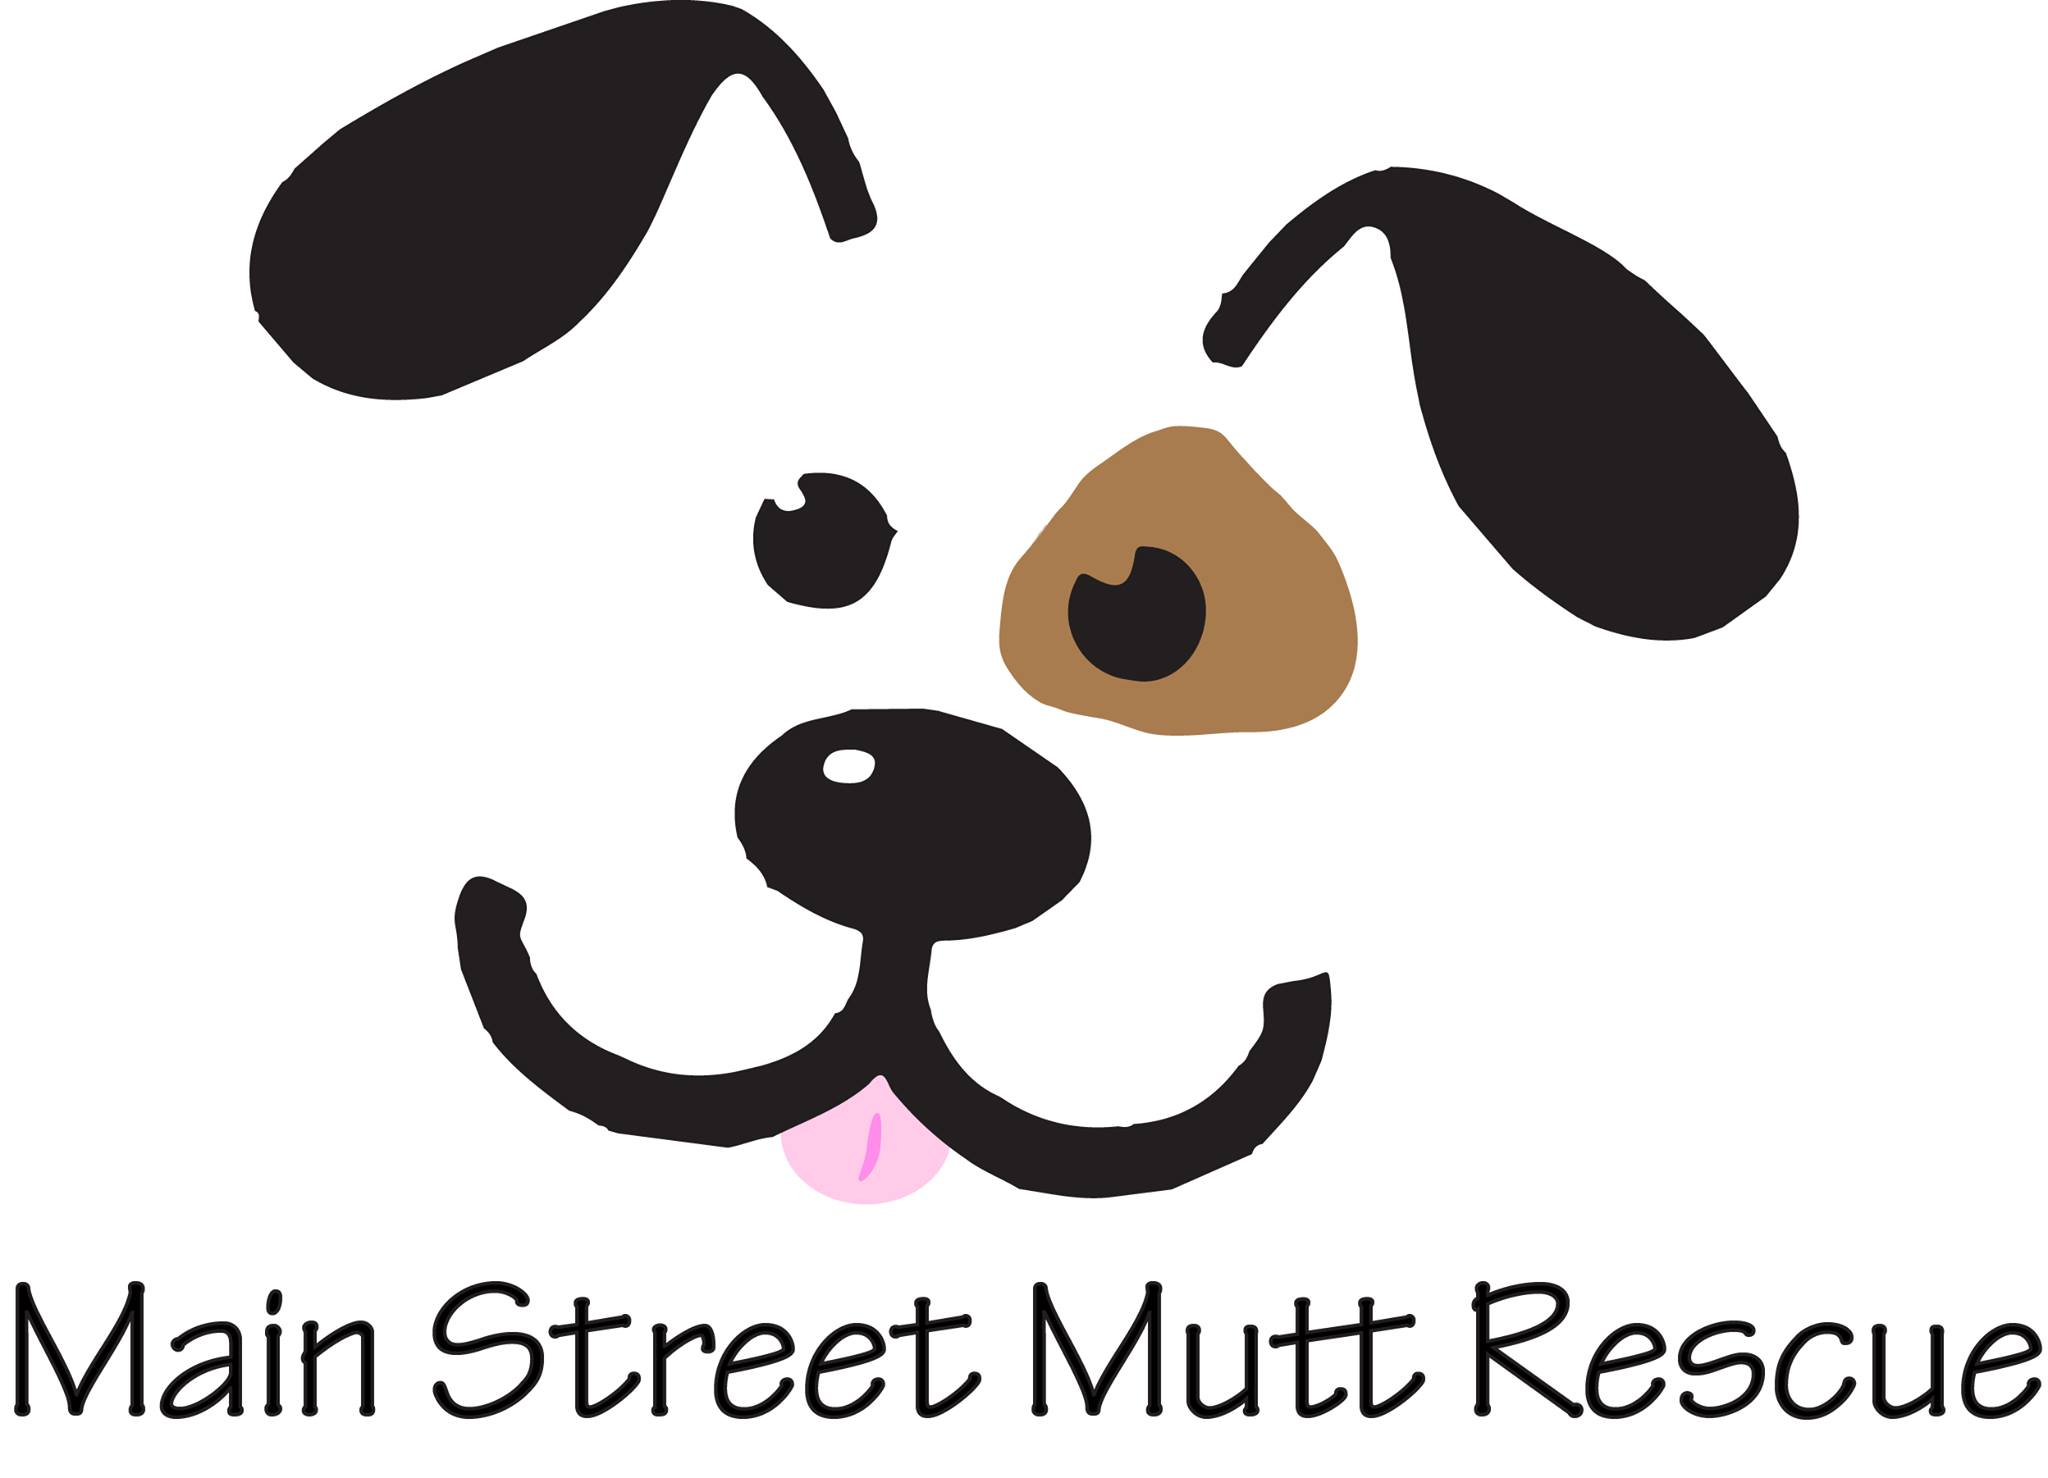 Main Street Mutt Rescue